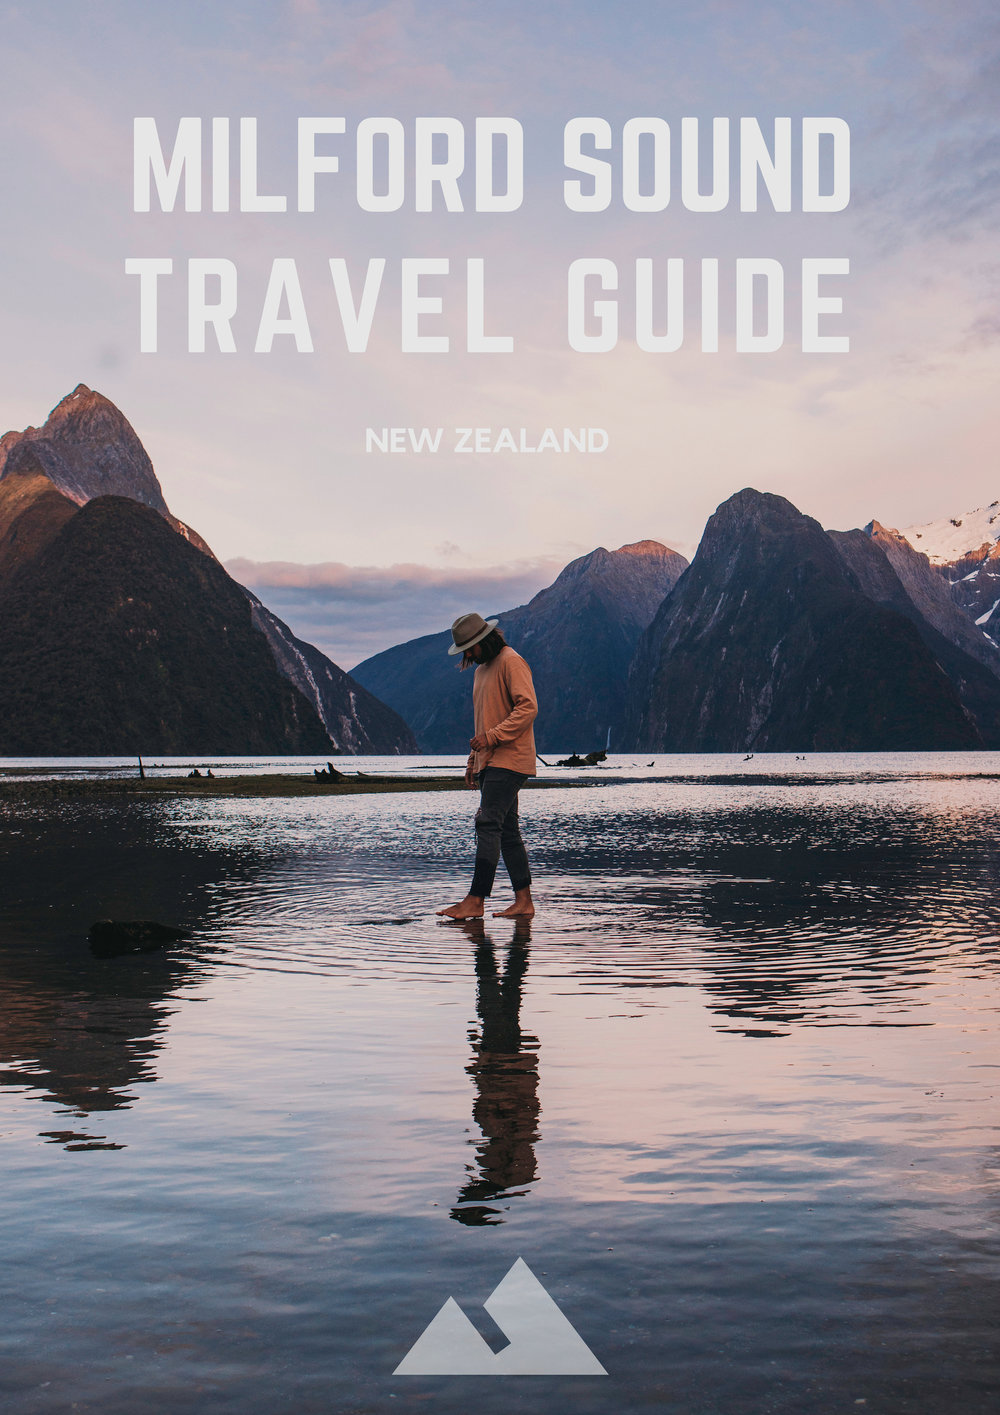 milford sound travel guide.jpg